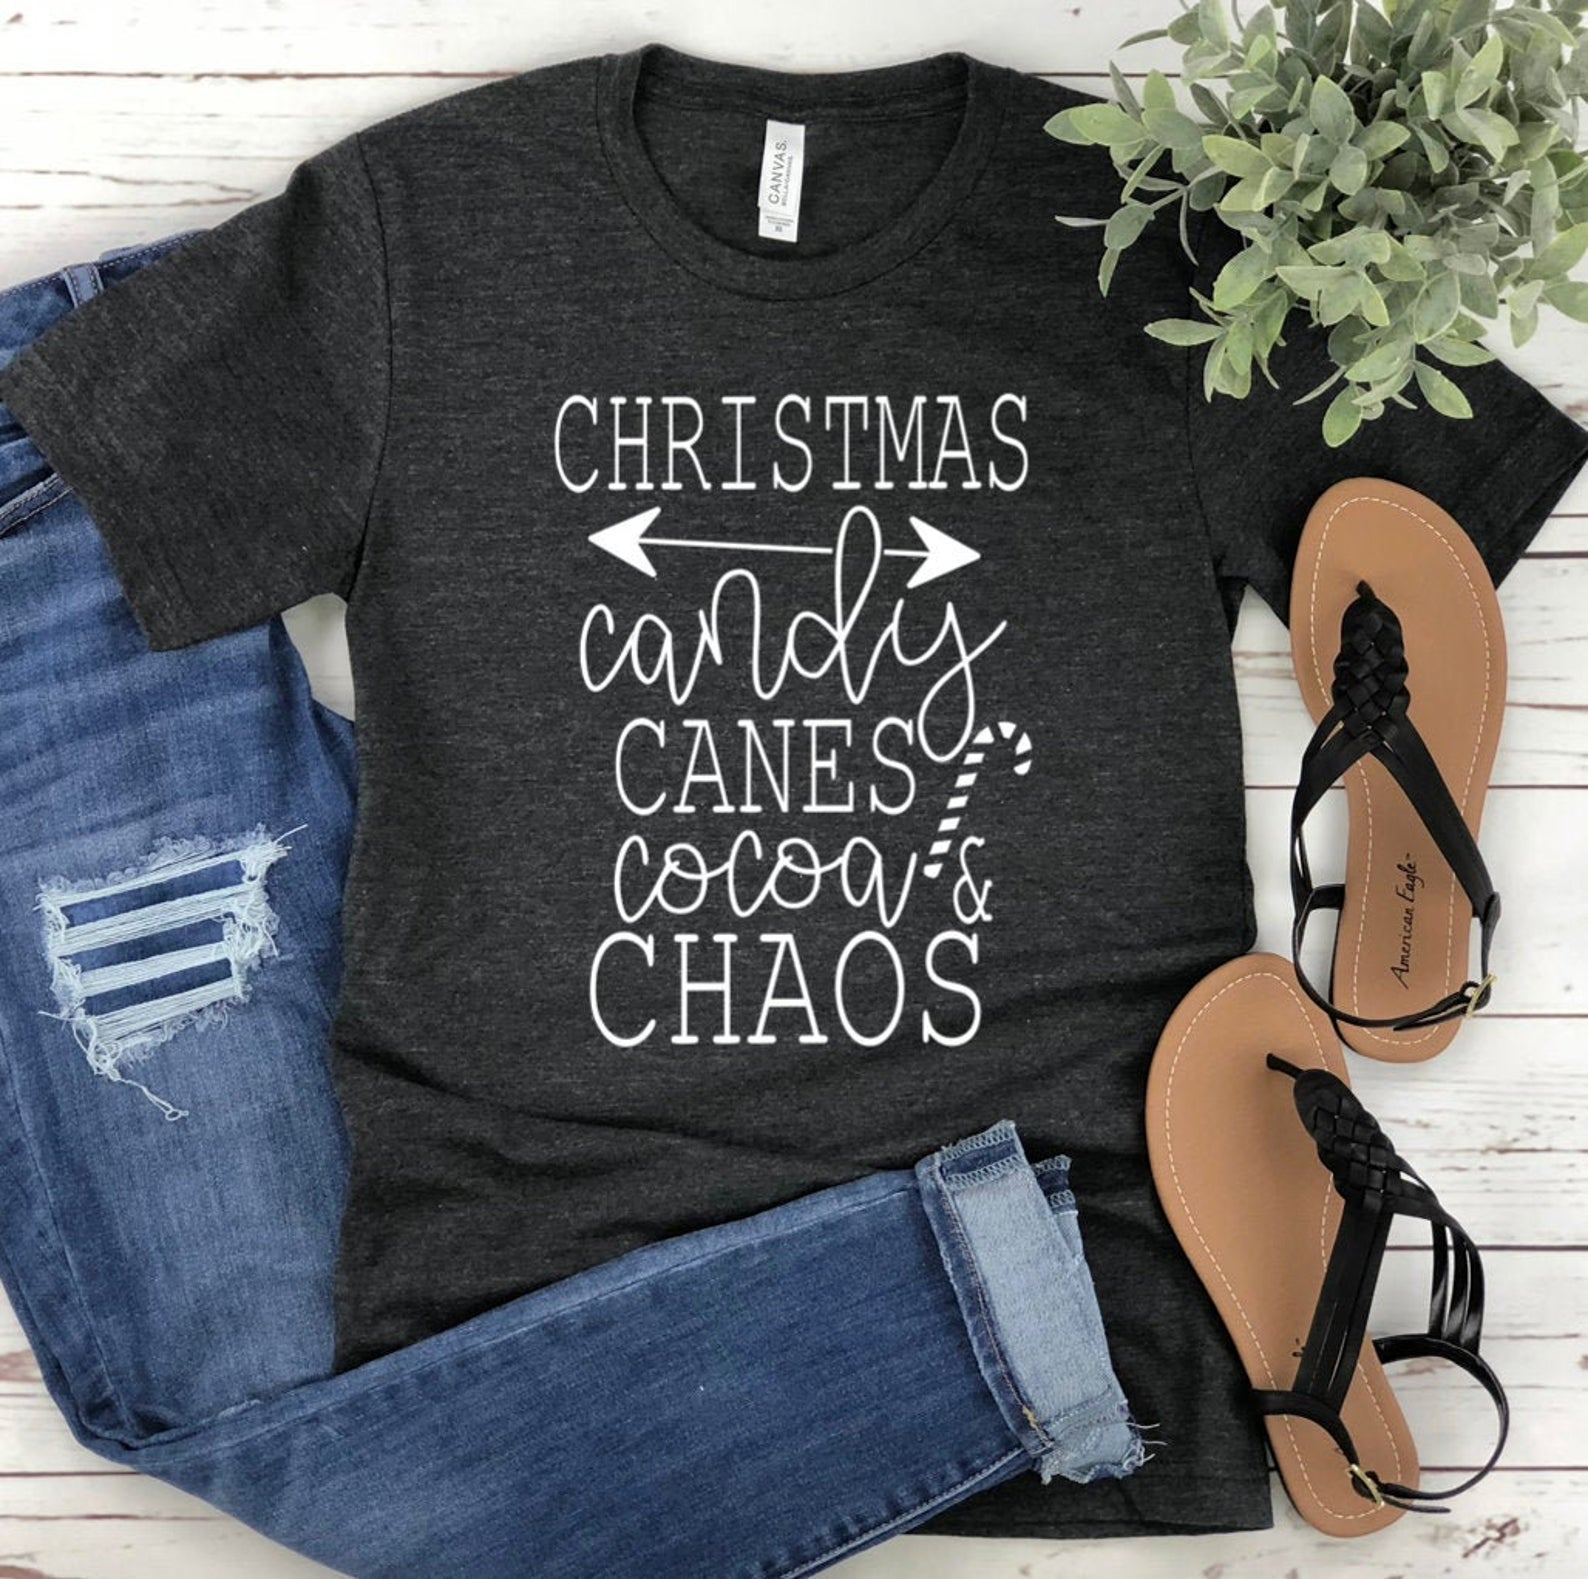 Christmas Candy Canes Cocoa Chaos Unisex T-shirt - Christmas Shirt for Women - Graphic Tee - Christmas Tee